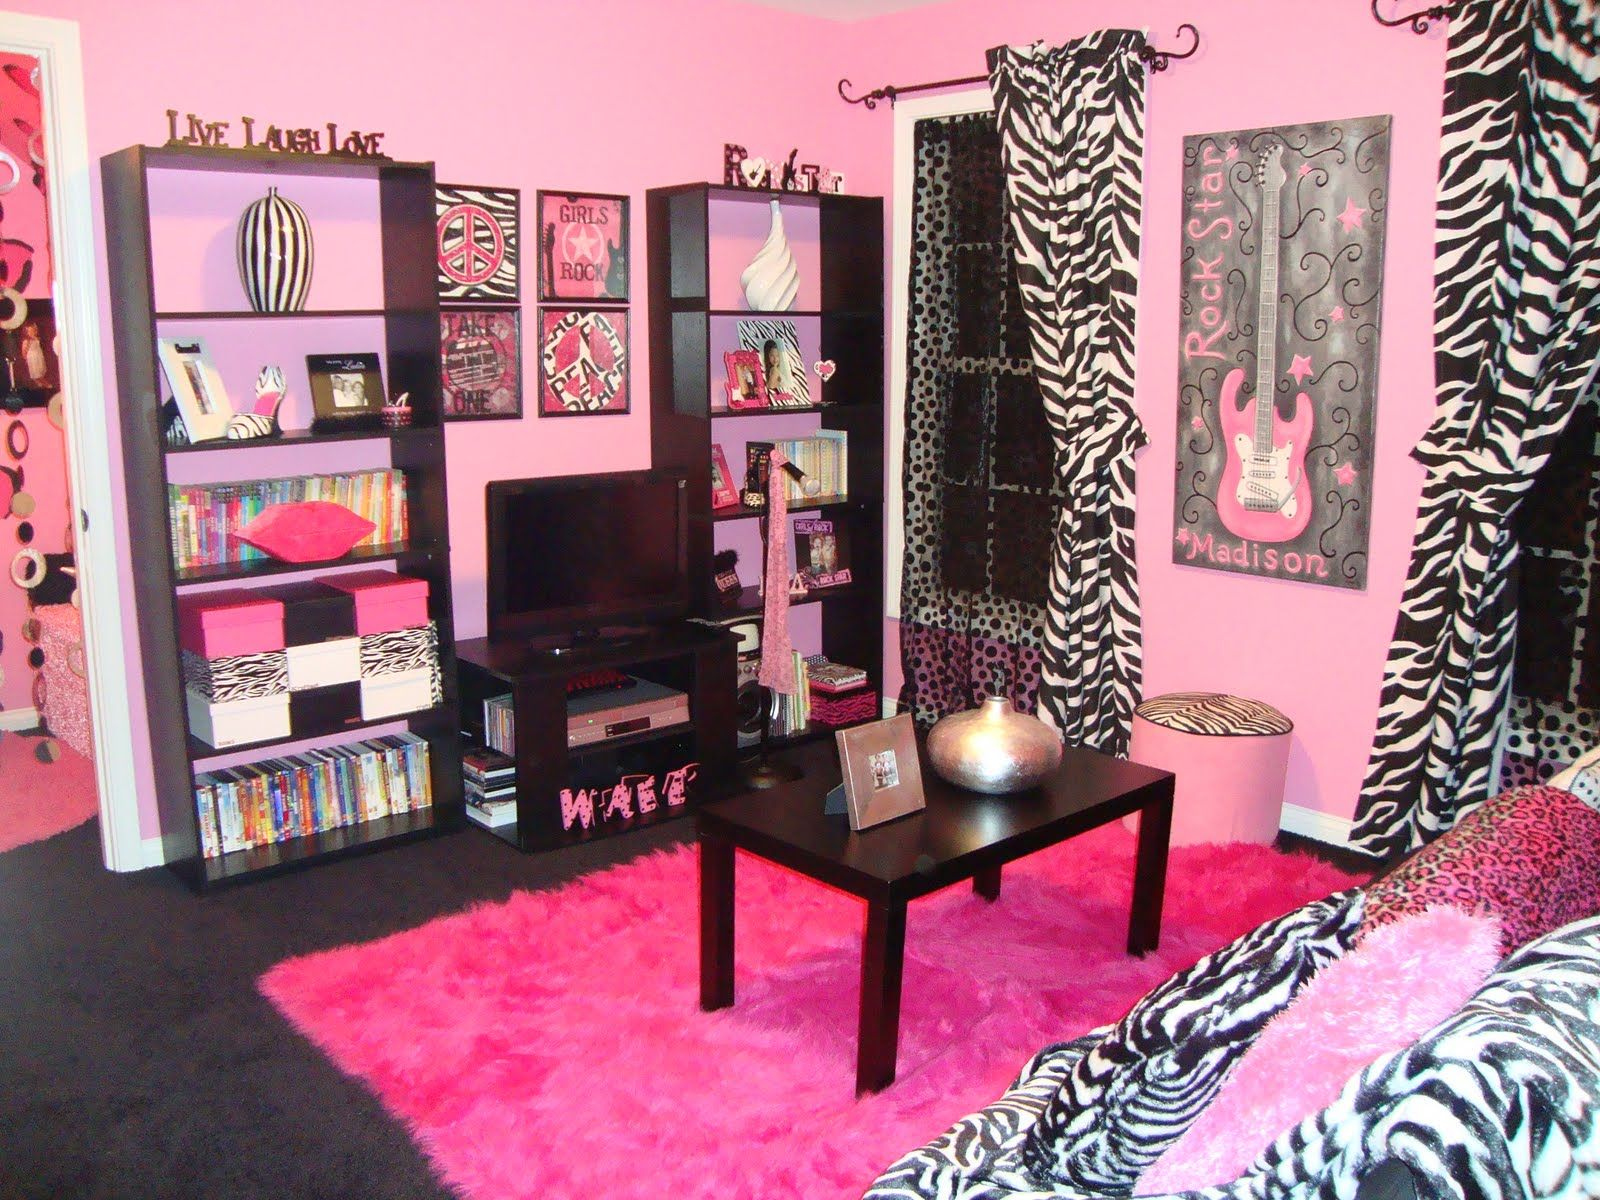 Pink Accessories For Living Room 25 Best Ideas About Zebra Room Decor On Pinterest Pink Zebra